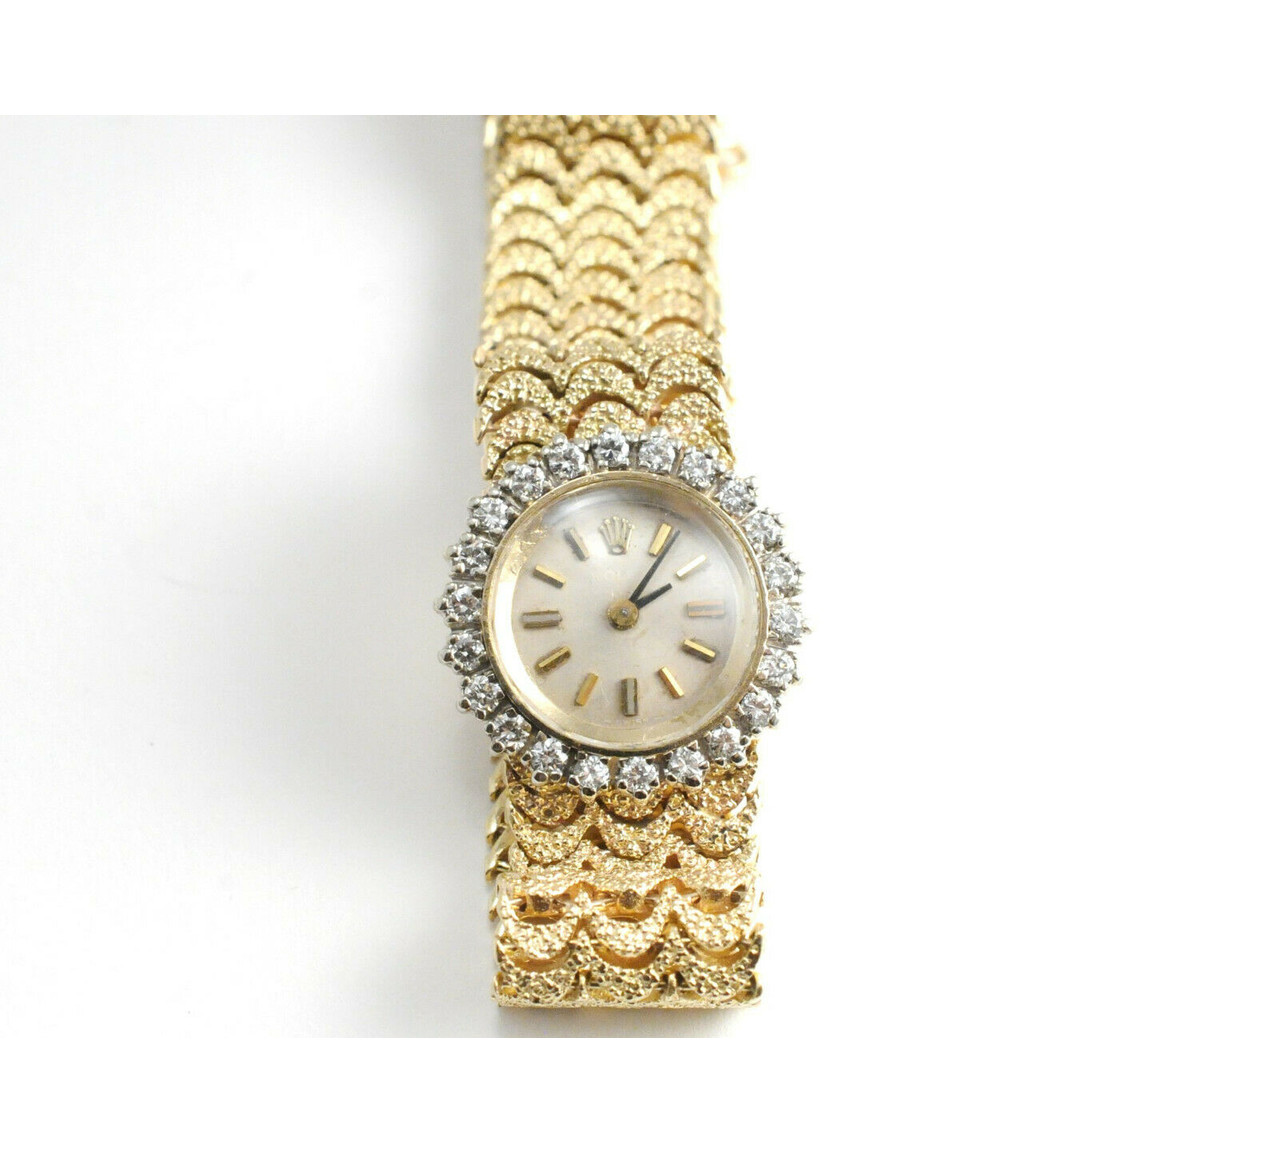 Shop Authentic, Luxury Brand Jewelry on Consignment   LePrix